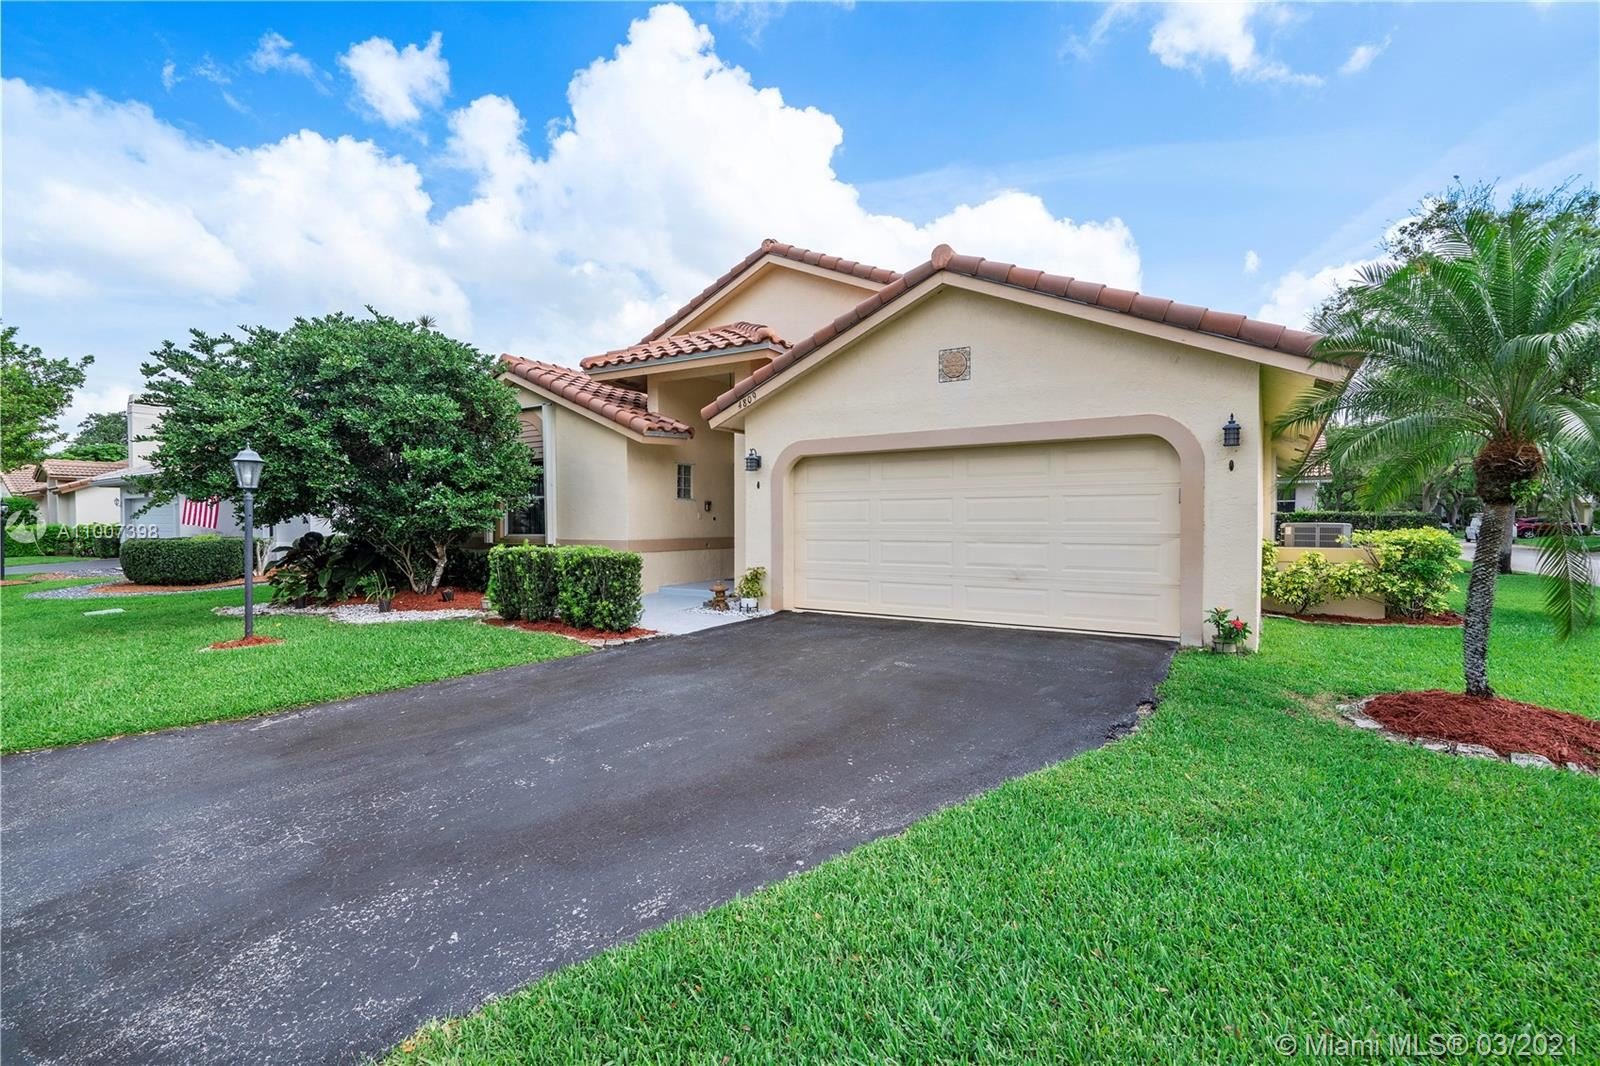 4809 NW 103rd Way, Coral Springs, FL 33076 - #: A11007398